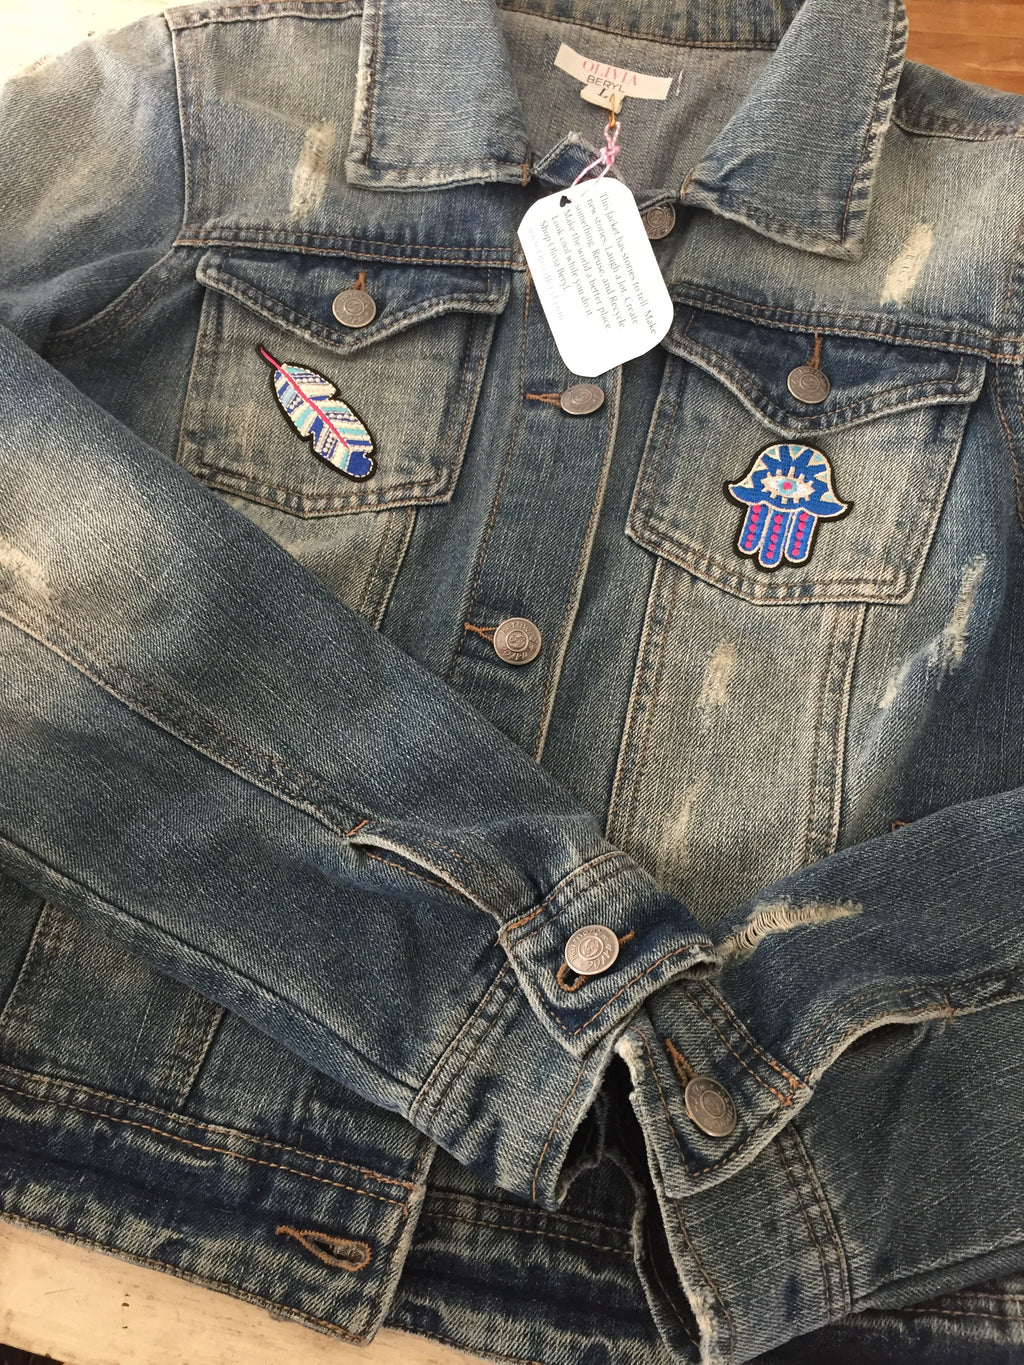 Vintage Denim Jacket with Patches